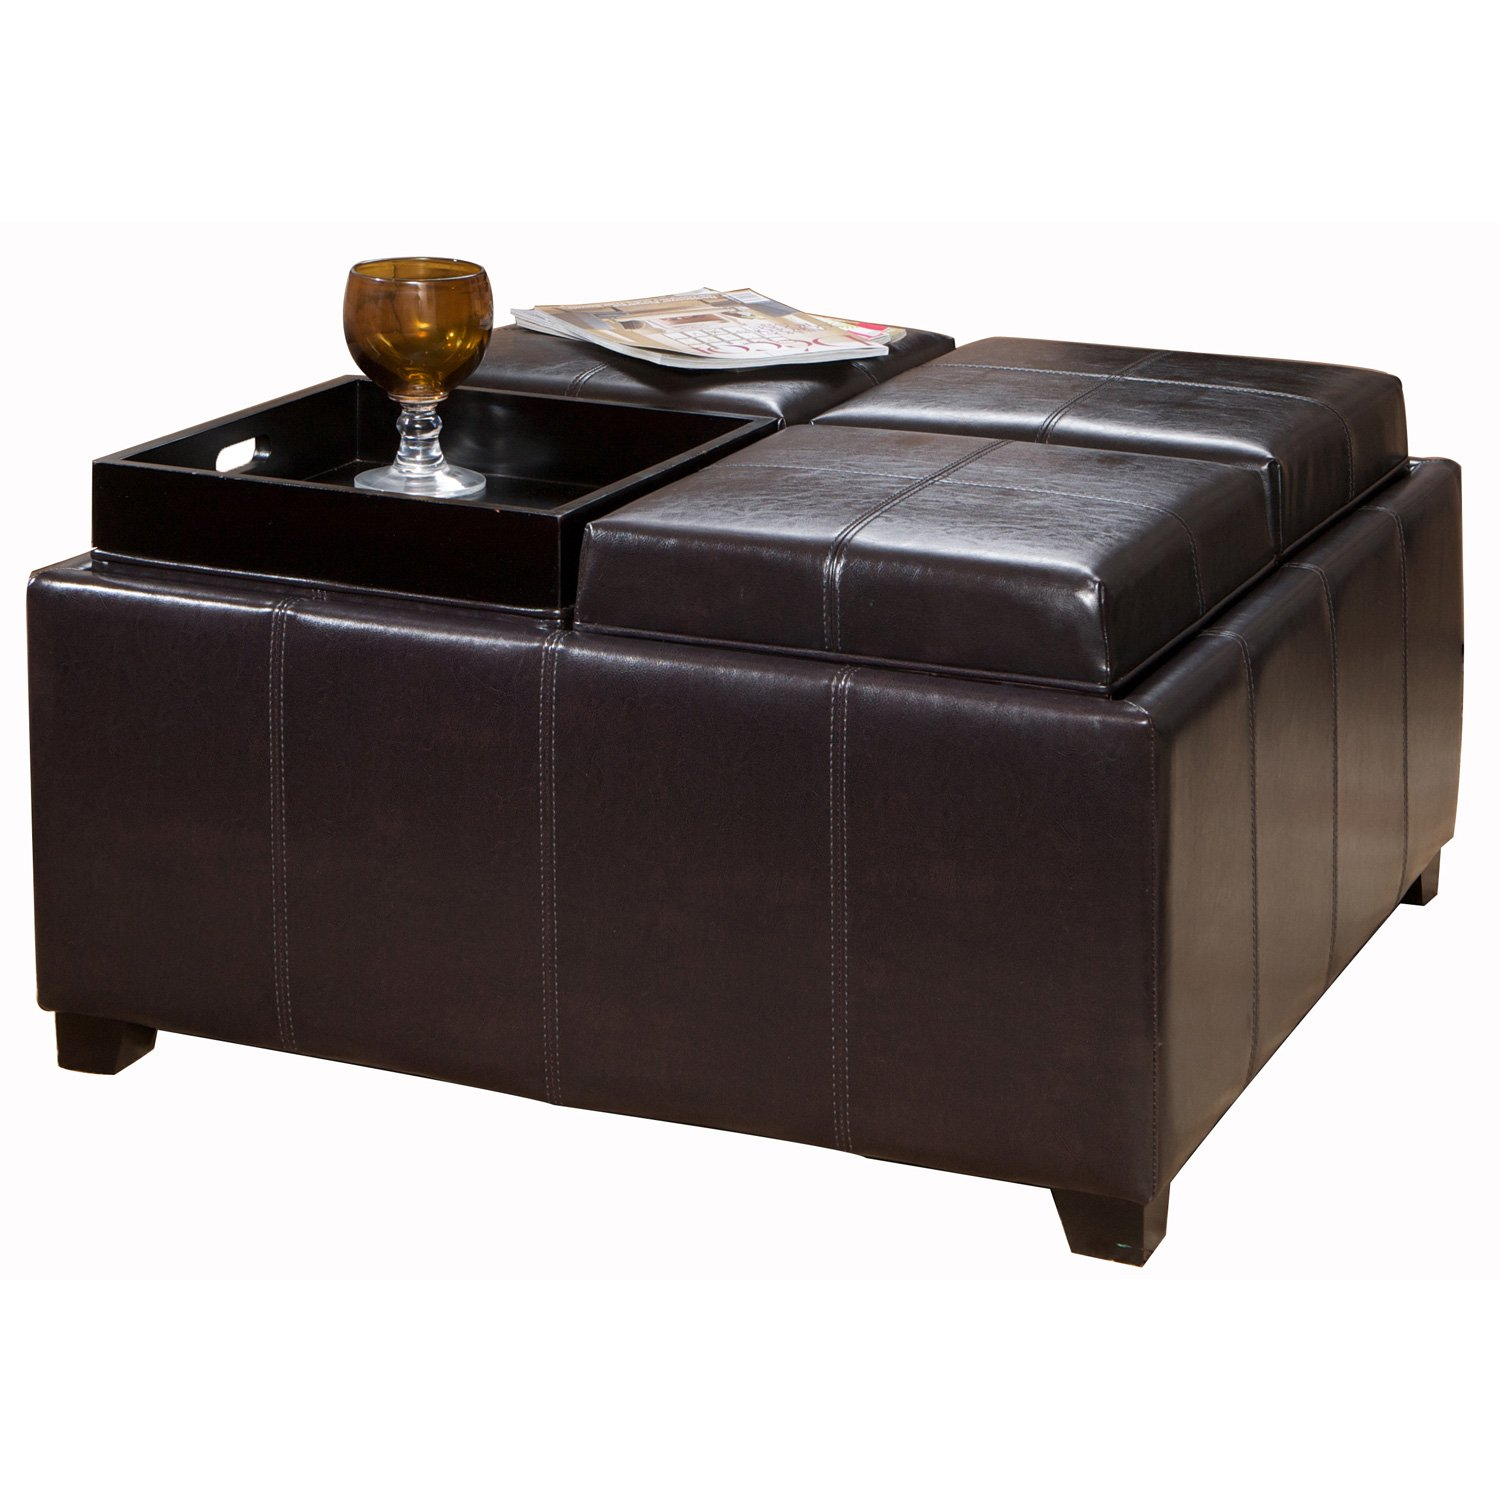 Amazon.com: Best Selling Dartmouth Leather Tray Ottoman, Black: Kitchen U0026  Dining